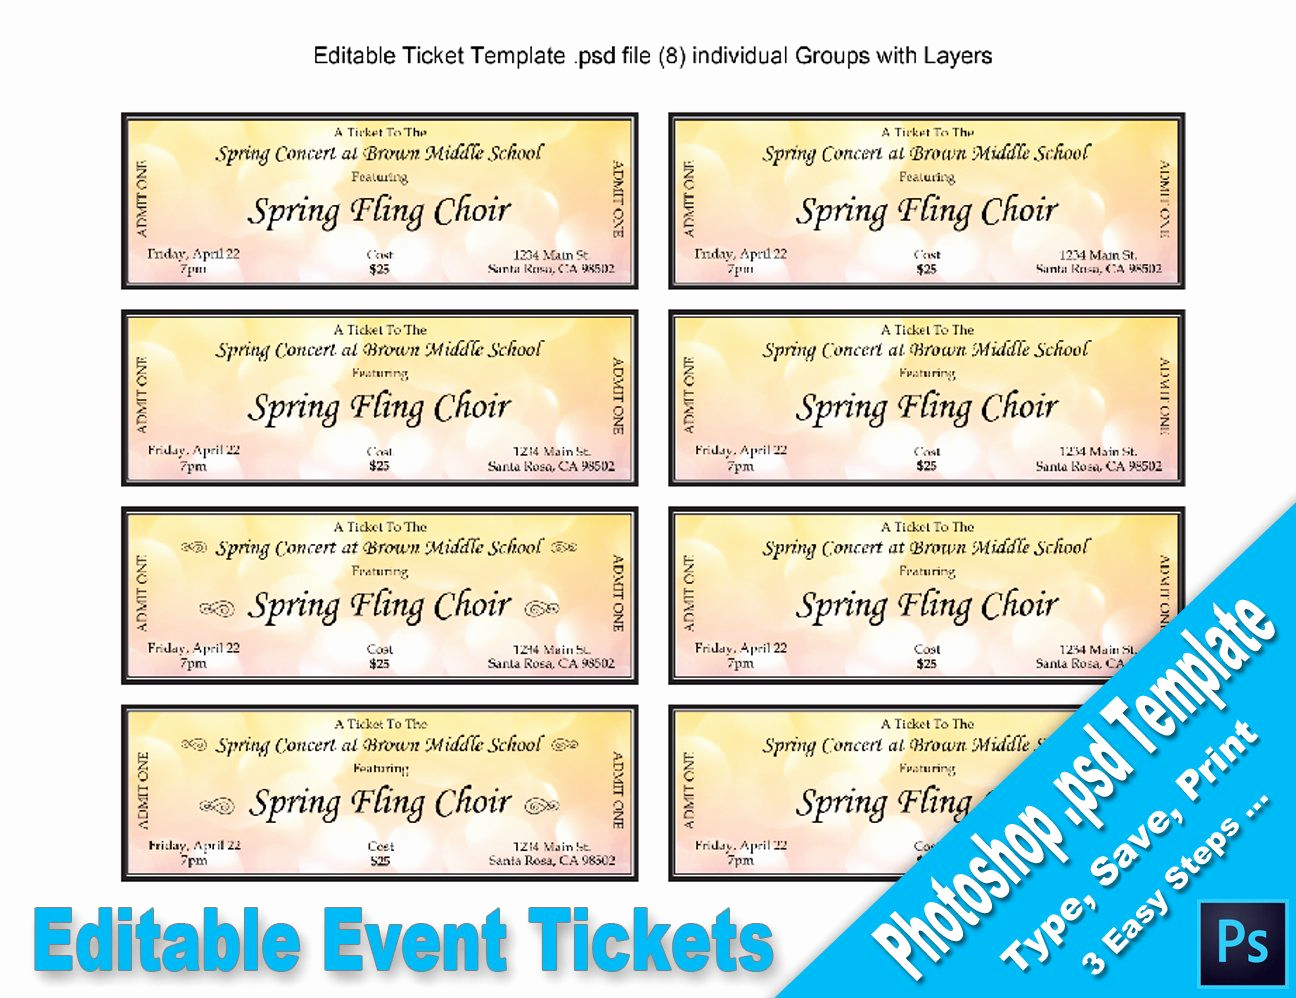 Editable Ticket Template Free Awesome event Tickets Editable Shop Psd Template Printable